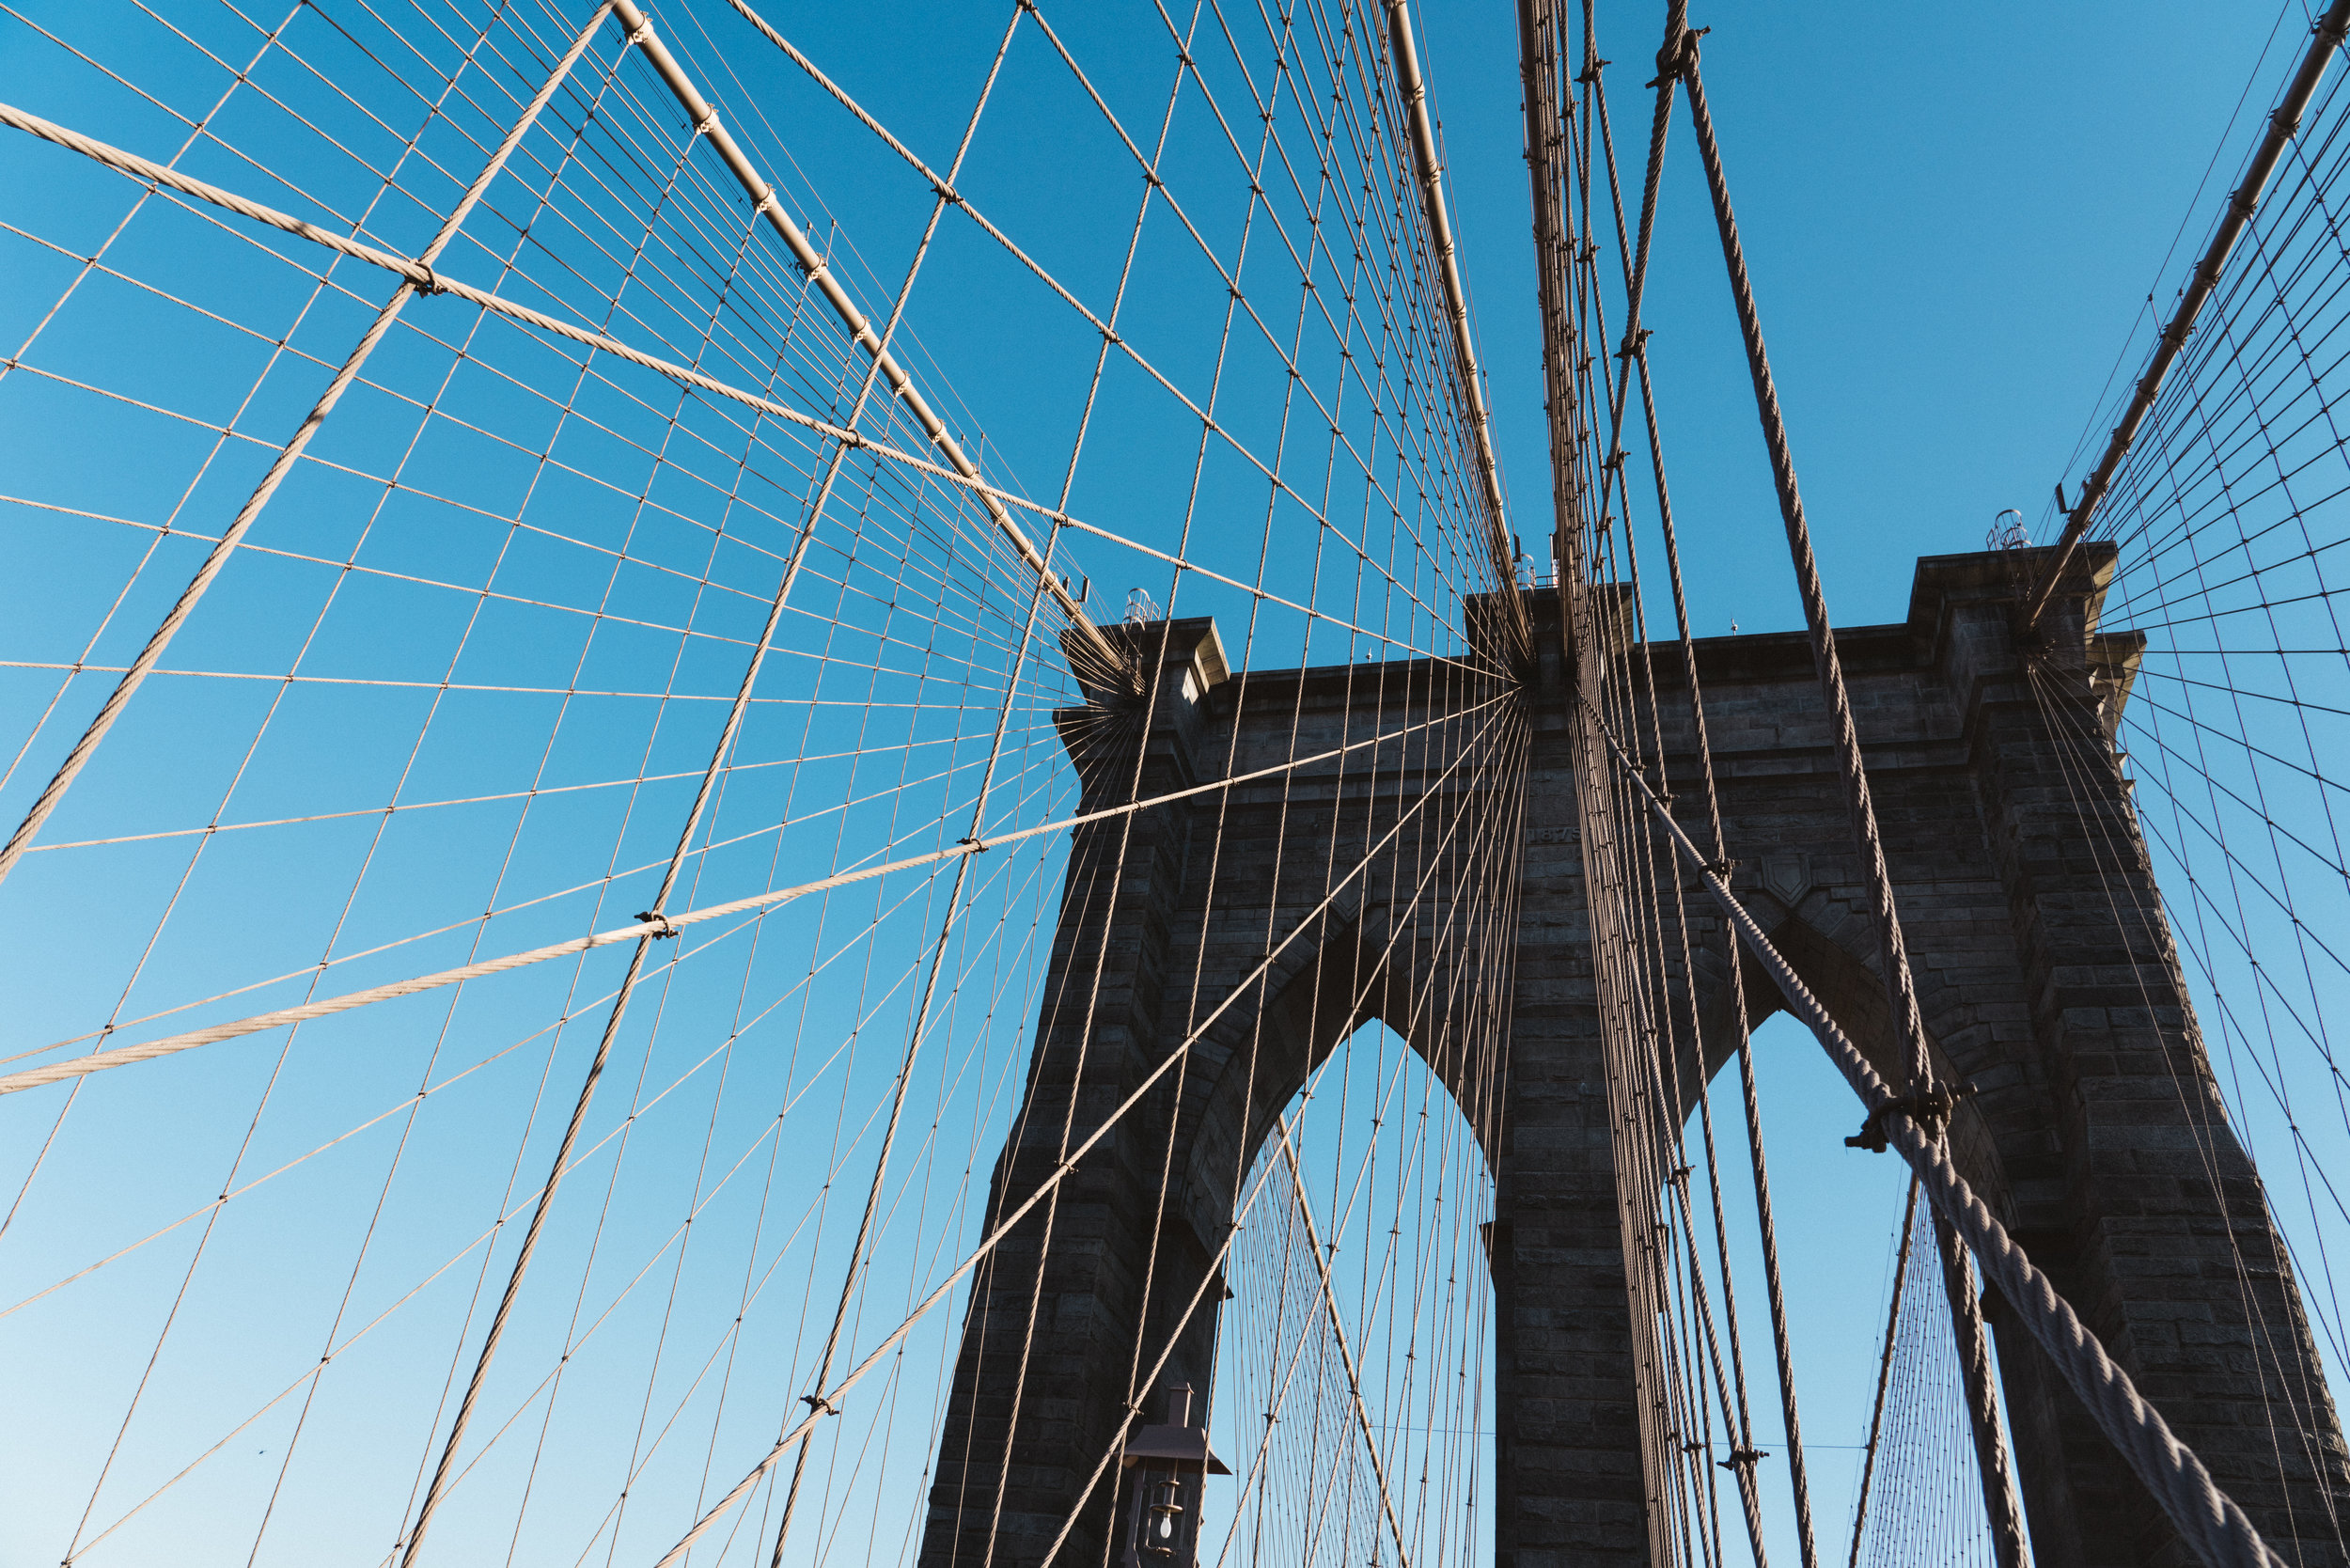 BrooklynBridge-1.jpg